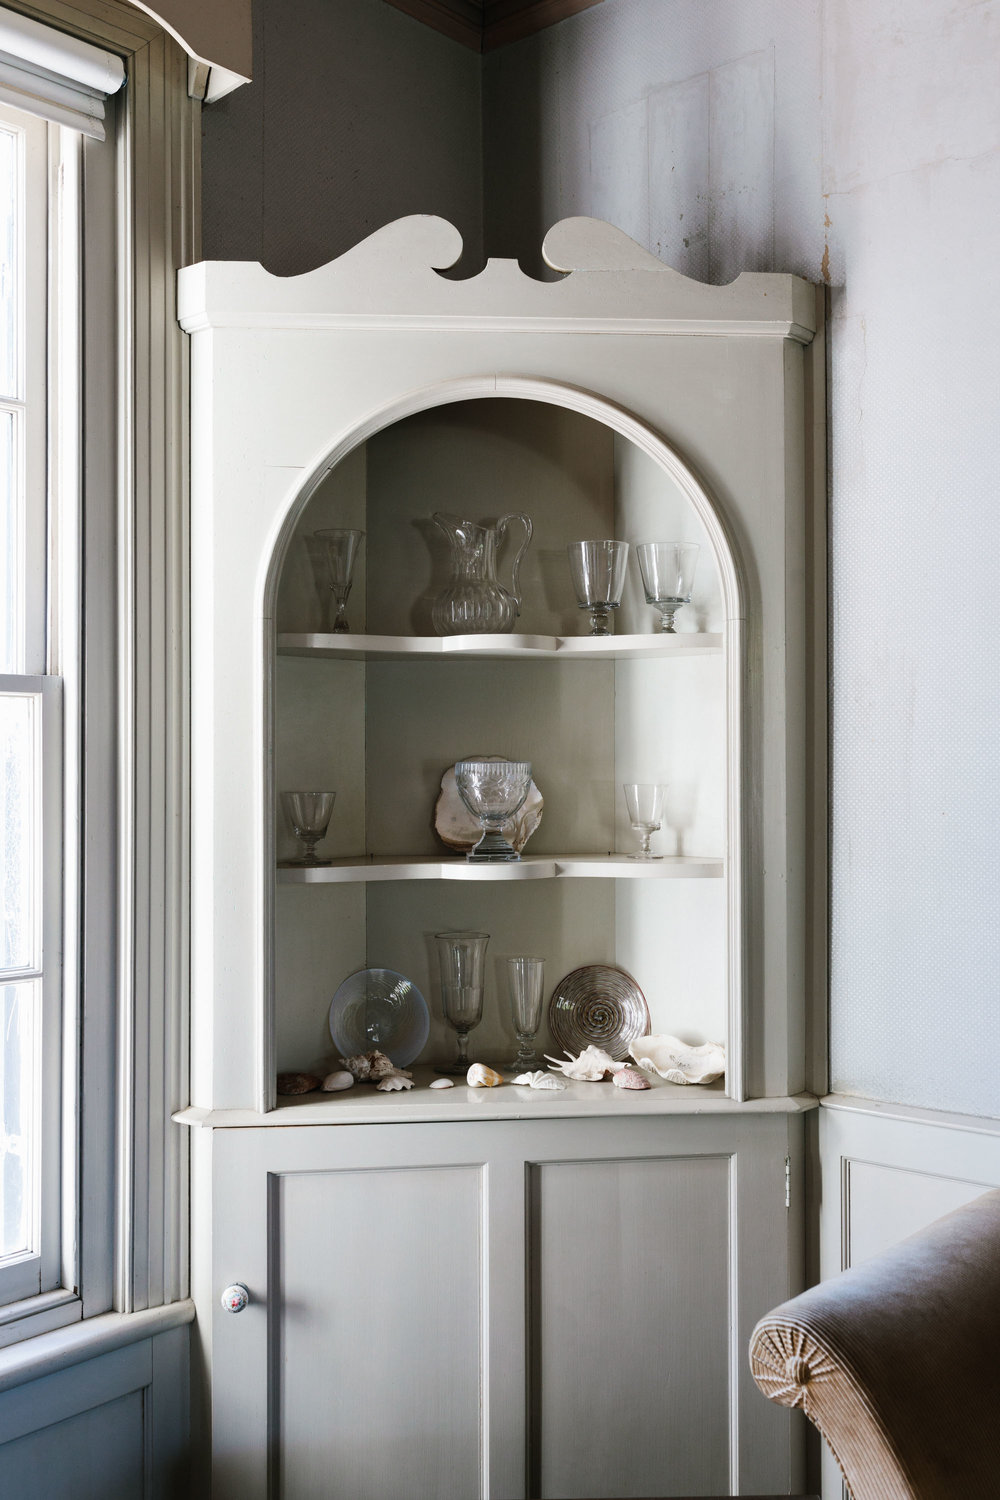 Marnie Hawson, Melbourne interior photographer, for Mulberry Hill and the National Trust